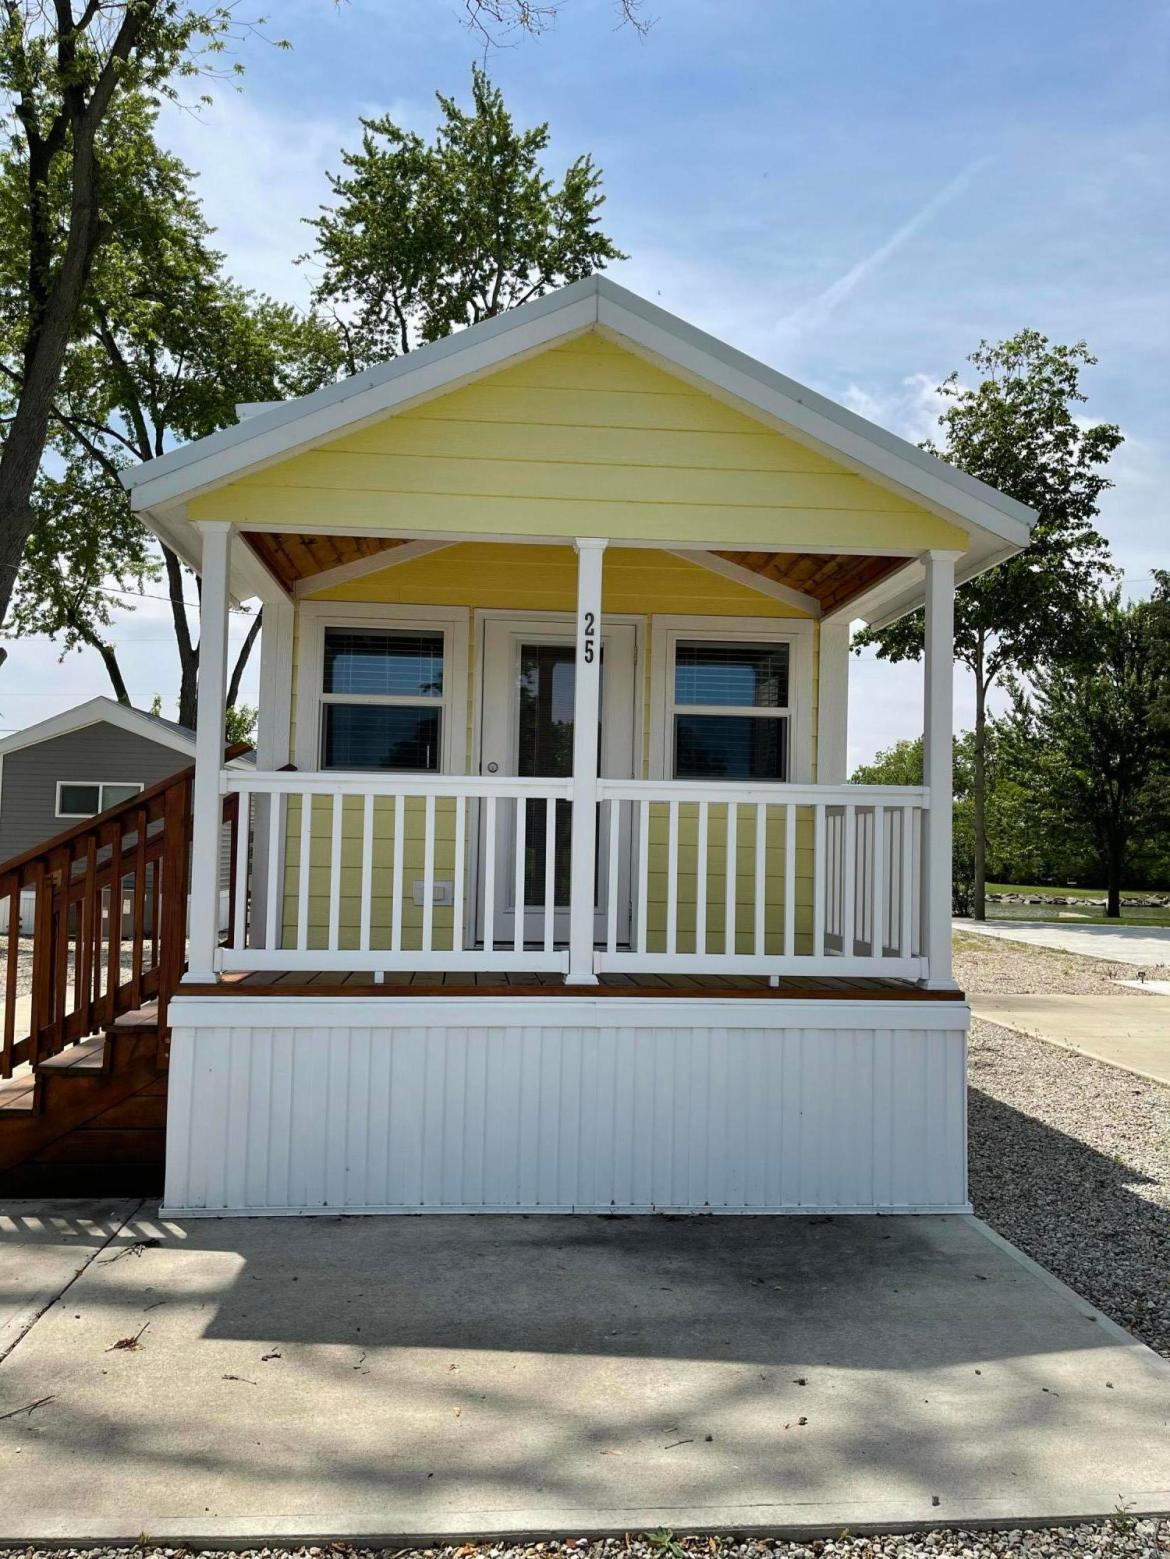 Looking for a weekend getaway, this is the place for you!!   Now is the time to start enjoying Grand Lake St. Marys, in your 2018 Canterbury Deluxe Cabin.  This one bedroom, one bath has a nice size loft for extra sleeping areas.    You can walk right out your front door, hop on your boat and take off for a day of relaxing on the lake. All appliances & furniture will stay with the cabin. Lot lease is $3,000 per year which includes, water, sewer, road maintenance, street lighting, one side of a dock & a community campfire area.  Owner pays for propane, electric, trash & cable.  There are 10x16 storage units for $600 per year on the east end of the property.  The buyer must carry $100,000 liability Insurance Coverage Policy.  There is a $40 charge for a background check on potential buyers.  Call today to check out this beautiful yellow cabin and start enjoying the summer at Park Grand Resort